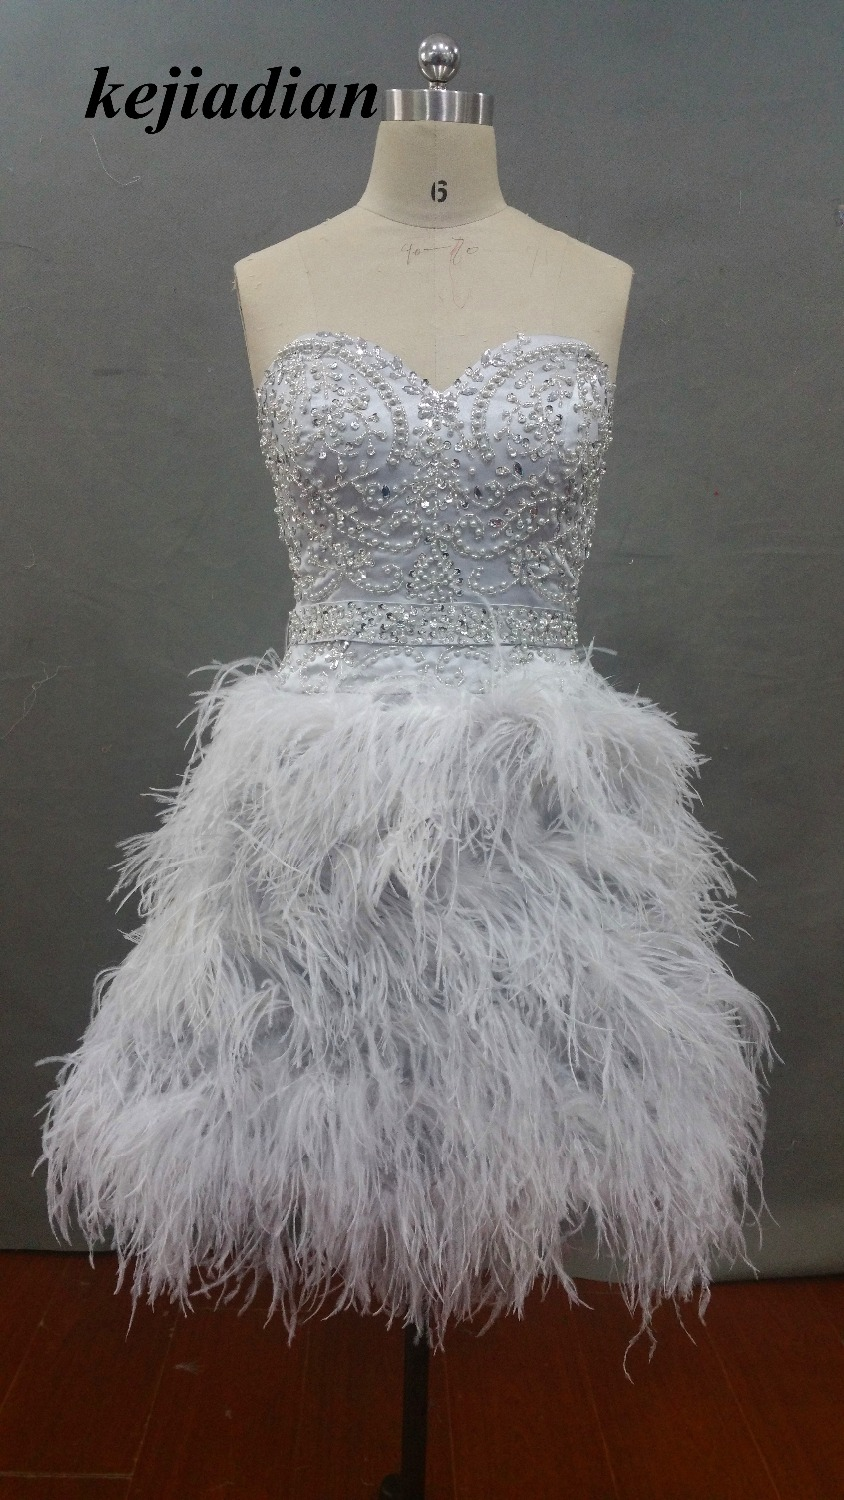 Short Silver Cocktail Dresses Feathers Sweetheart Neck Corset Graduation Homecoming Dress Beading Bodice Girls Gowns Novel Design; In